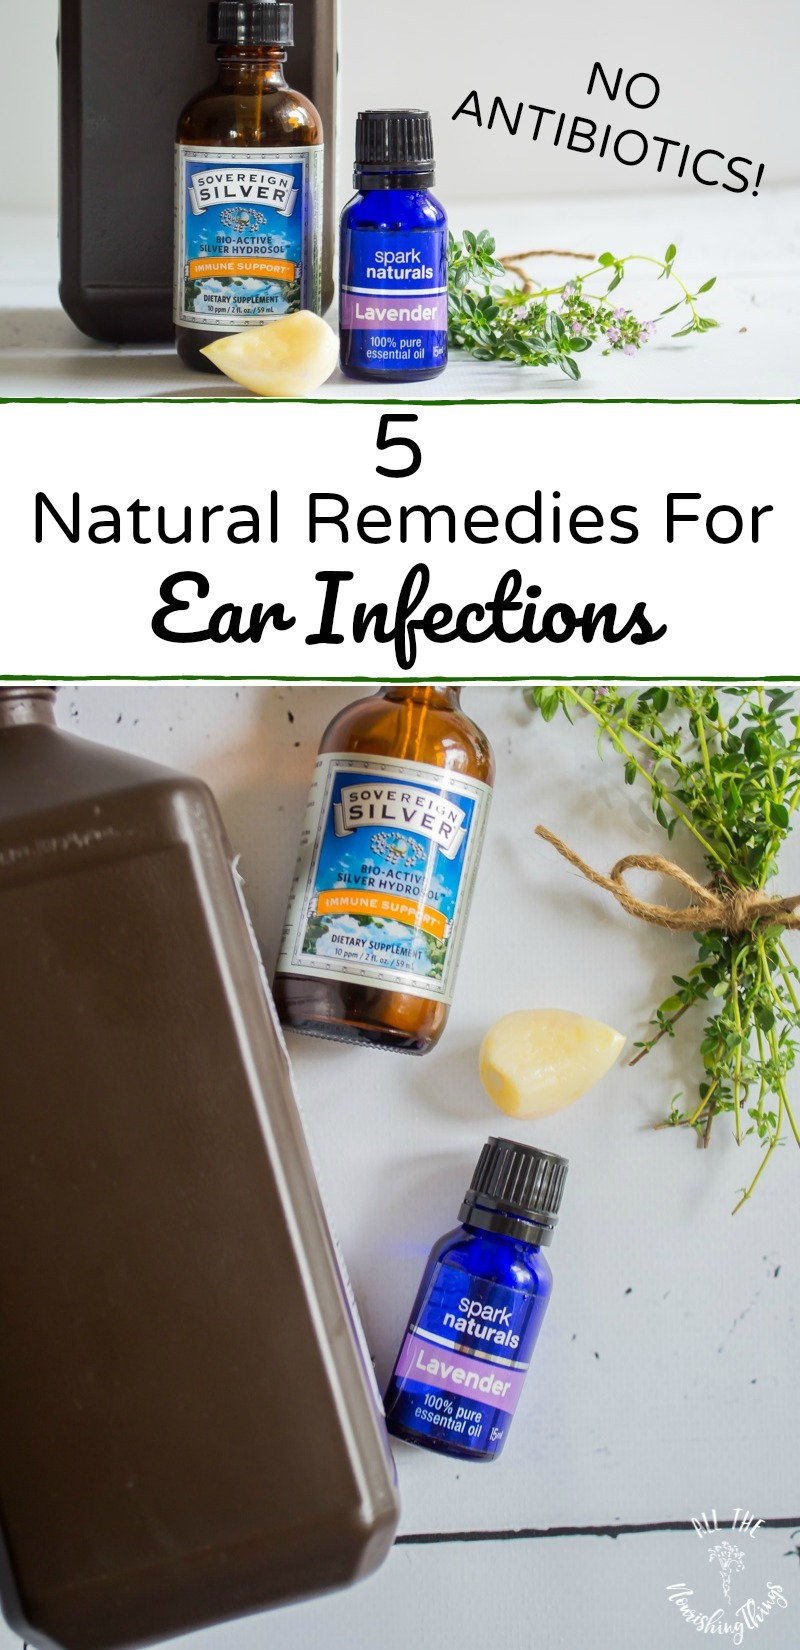 natural remedies for ear infections no antibiotics with text overlay